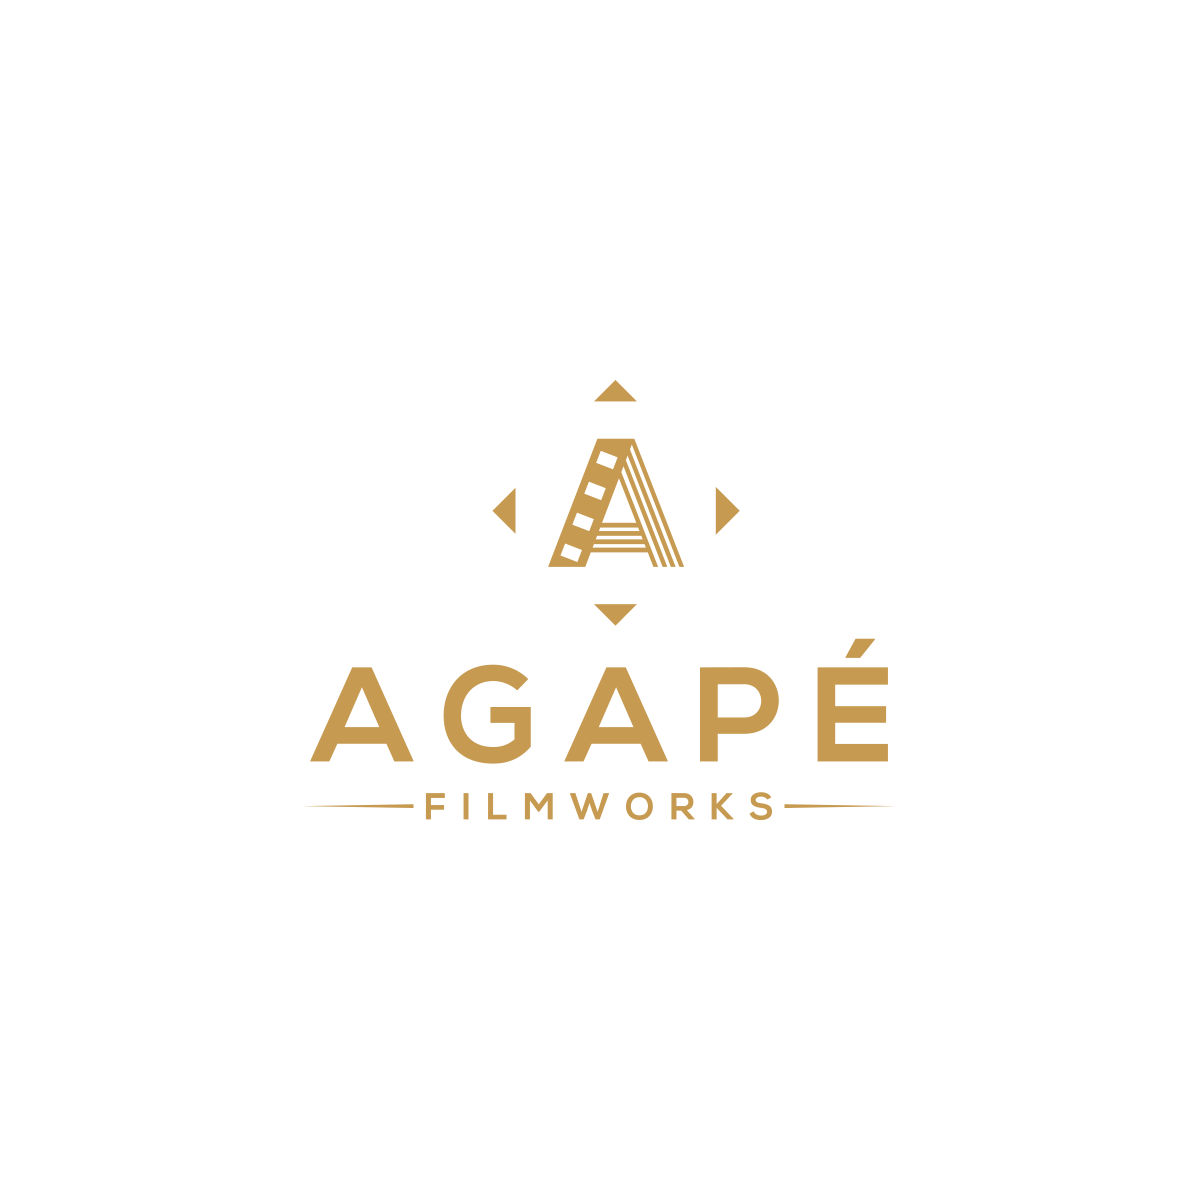 Agape film works Gold